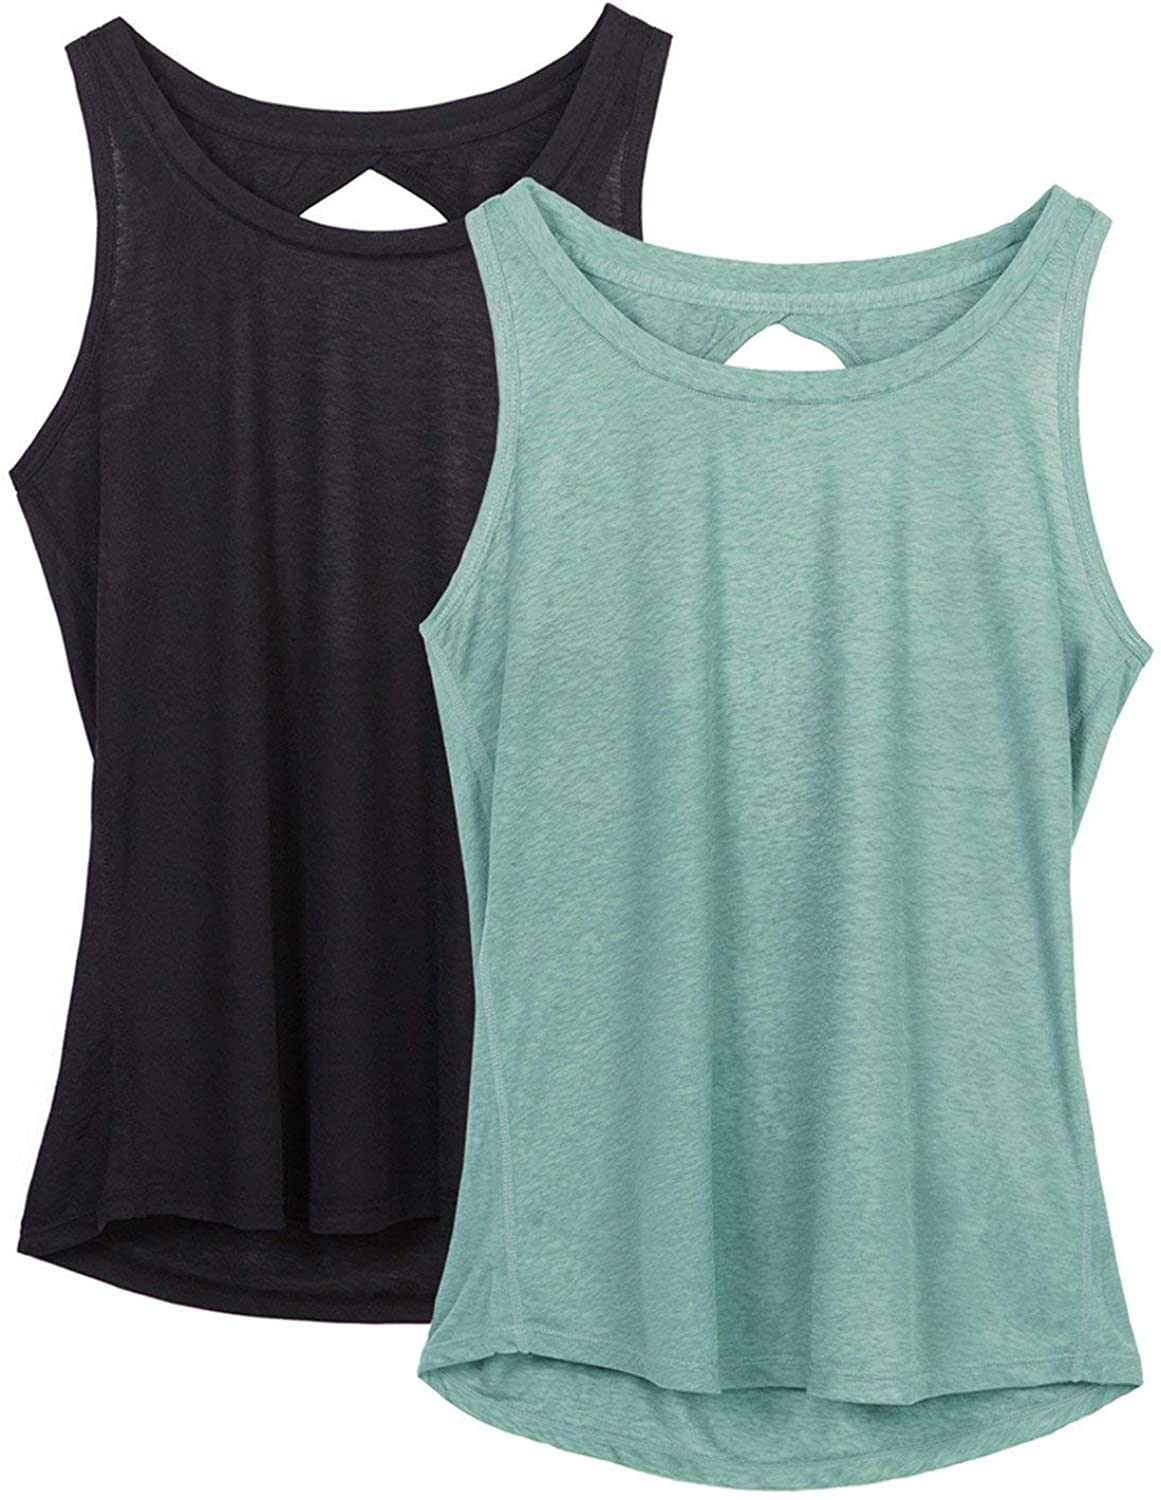 Athletic Exercise Strappy Tanks Gym Shirts Pack of 2 icyzone Workout Tank Tops for Women Yoga Tops